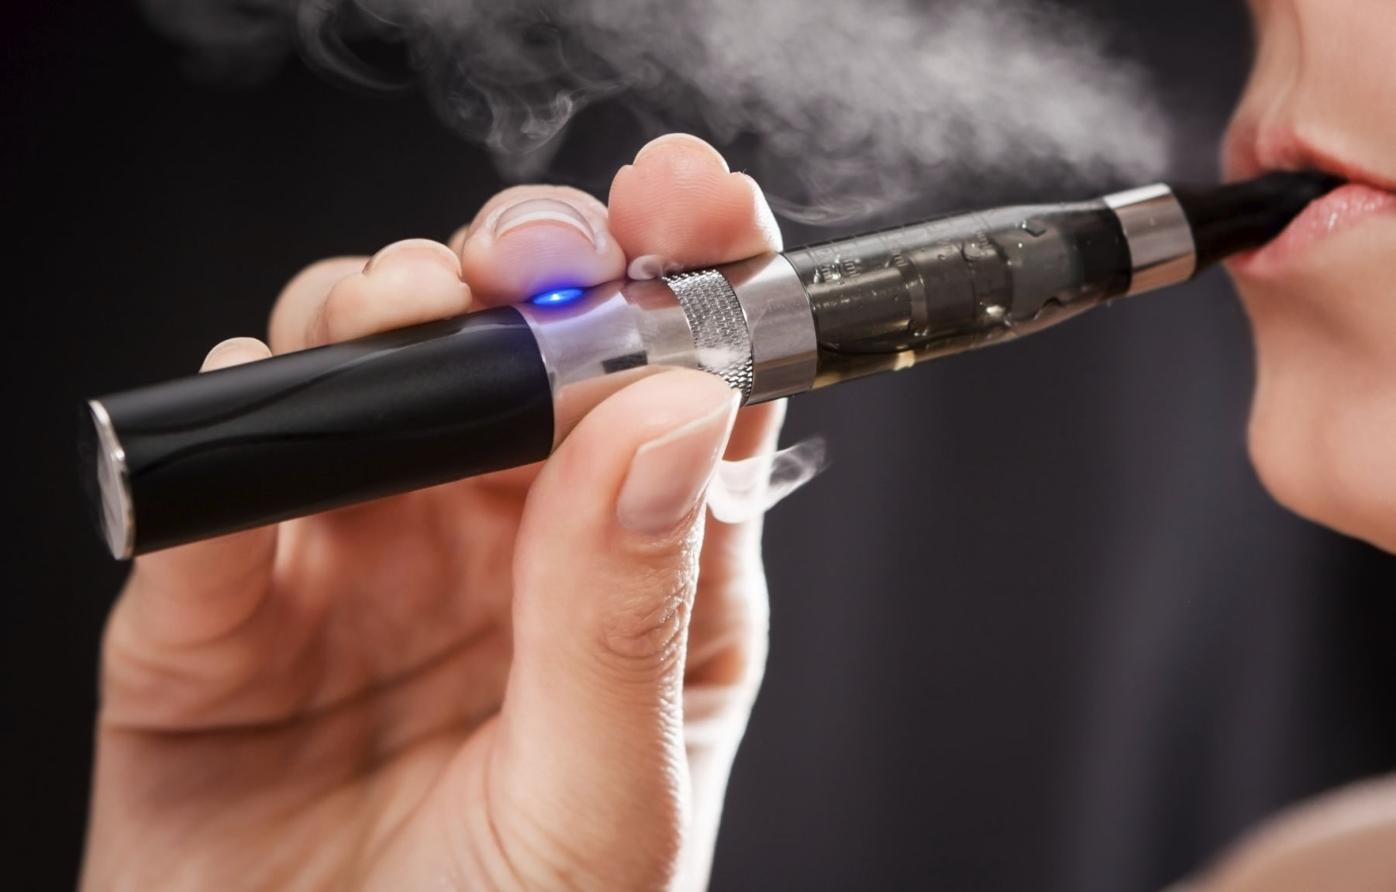 Cloudy controversy surrounds vaping